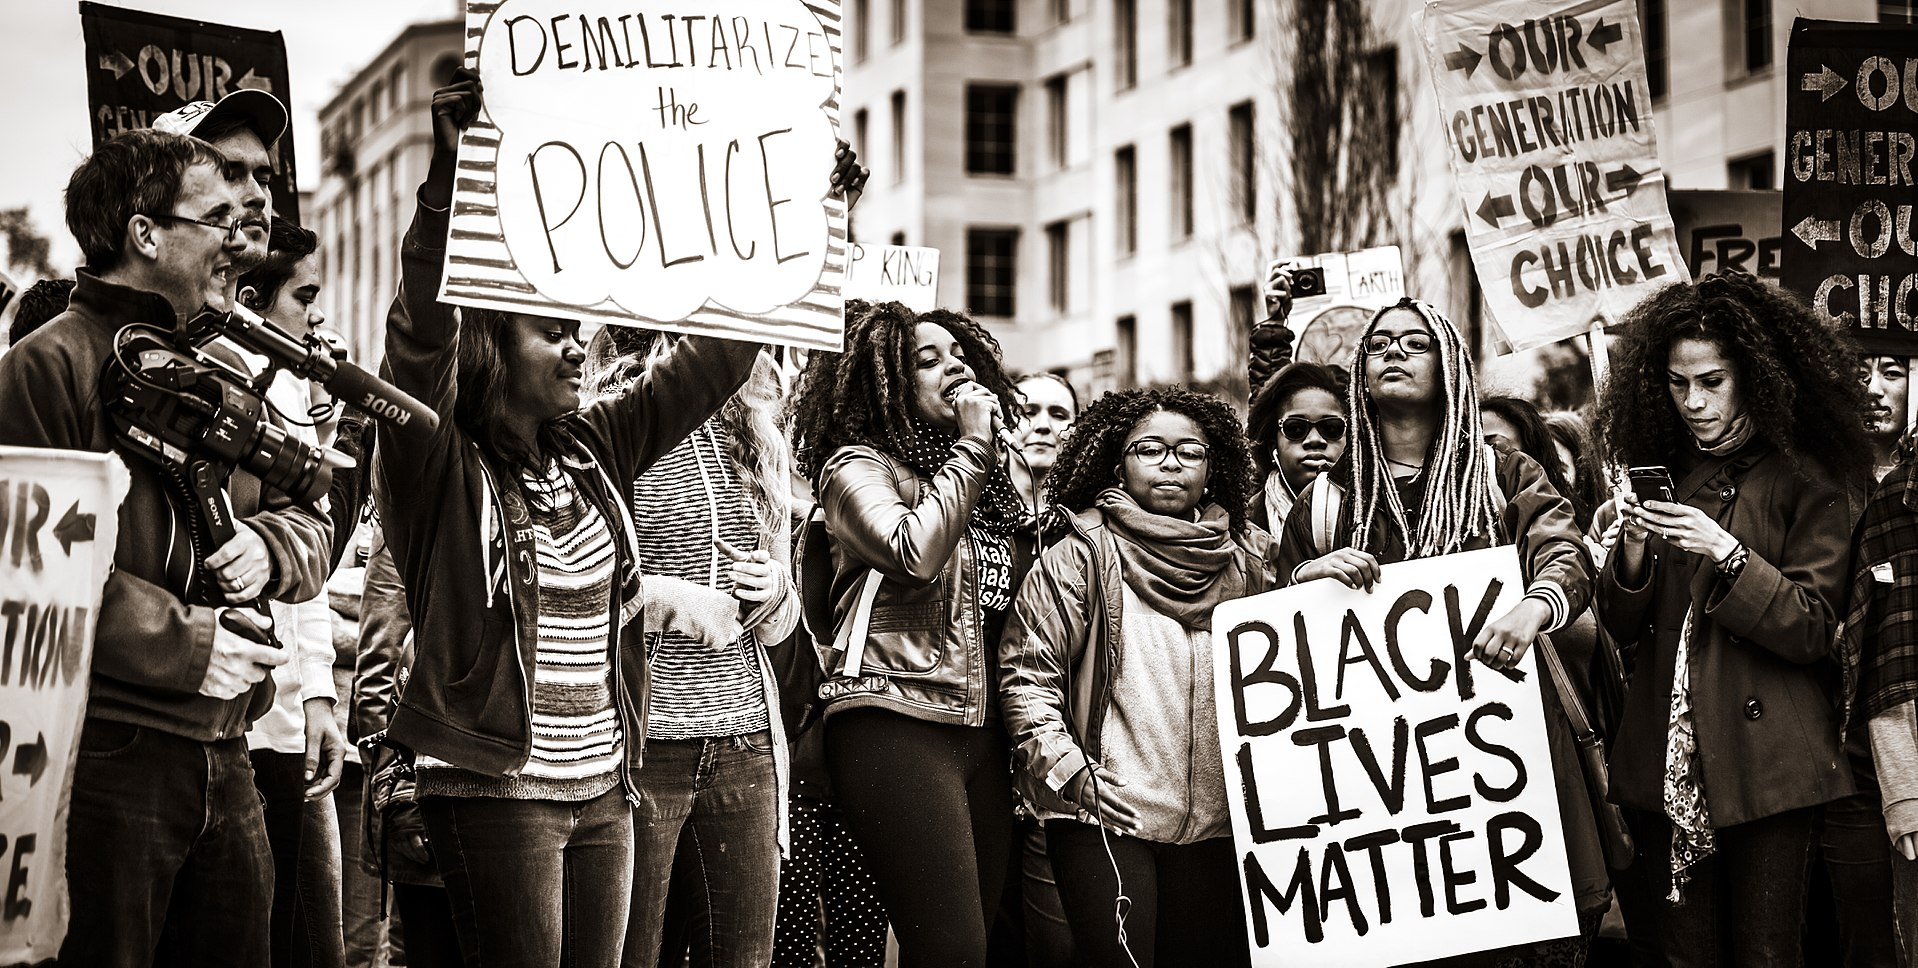 Black_Lives_Matter_Protest By Johnny Silvercloud, CC BY-SA 2.0